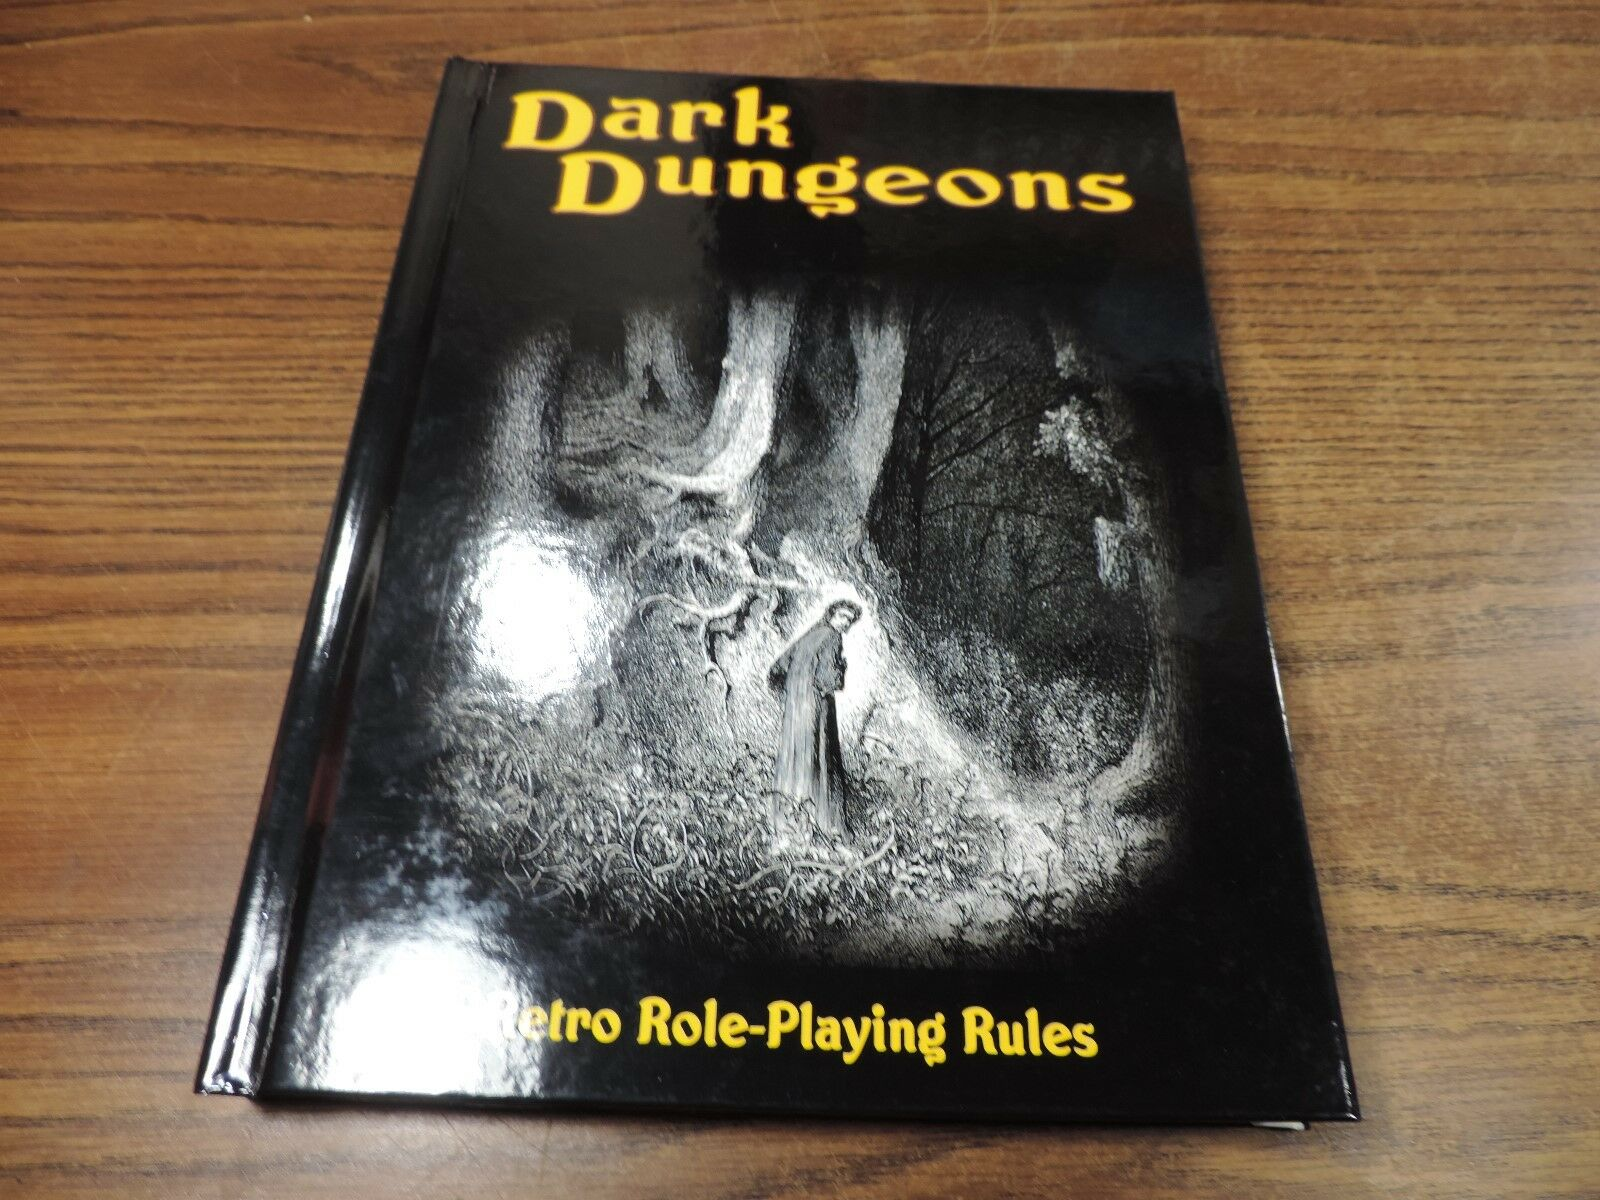 Dark Dungeons RPG Retro Role-Playing Rules Core Rulebook HC